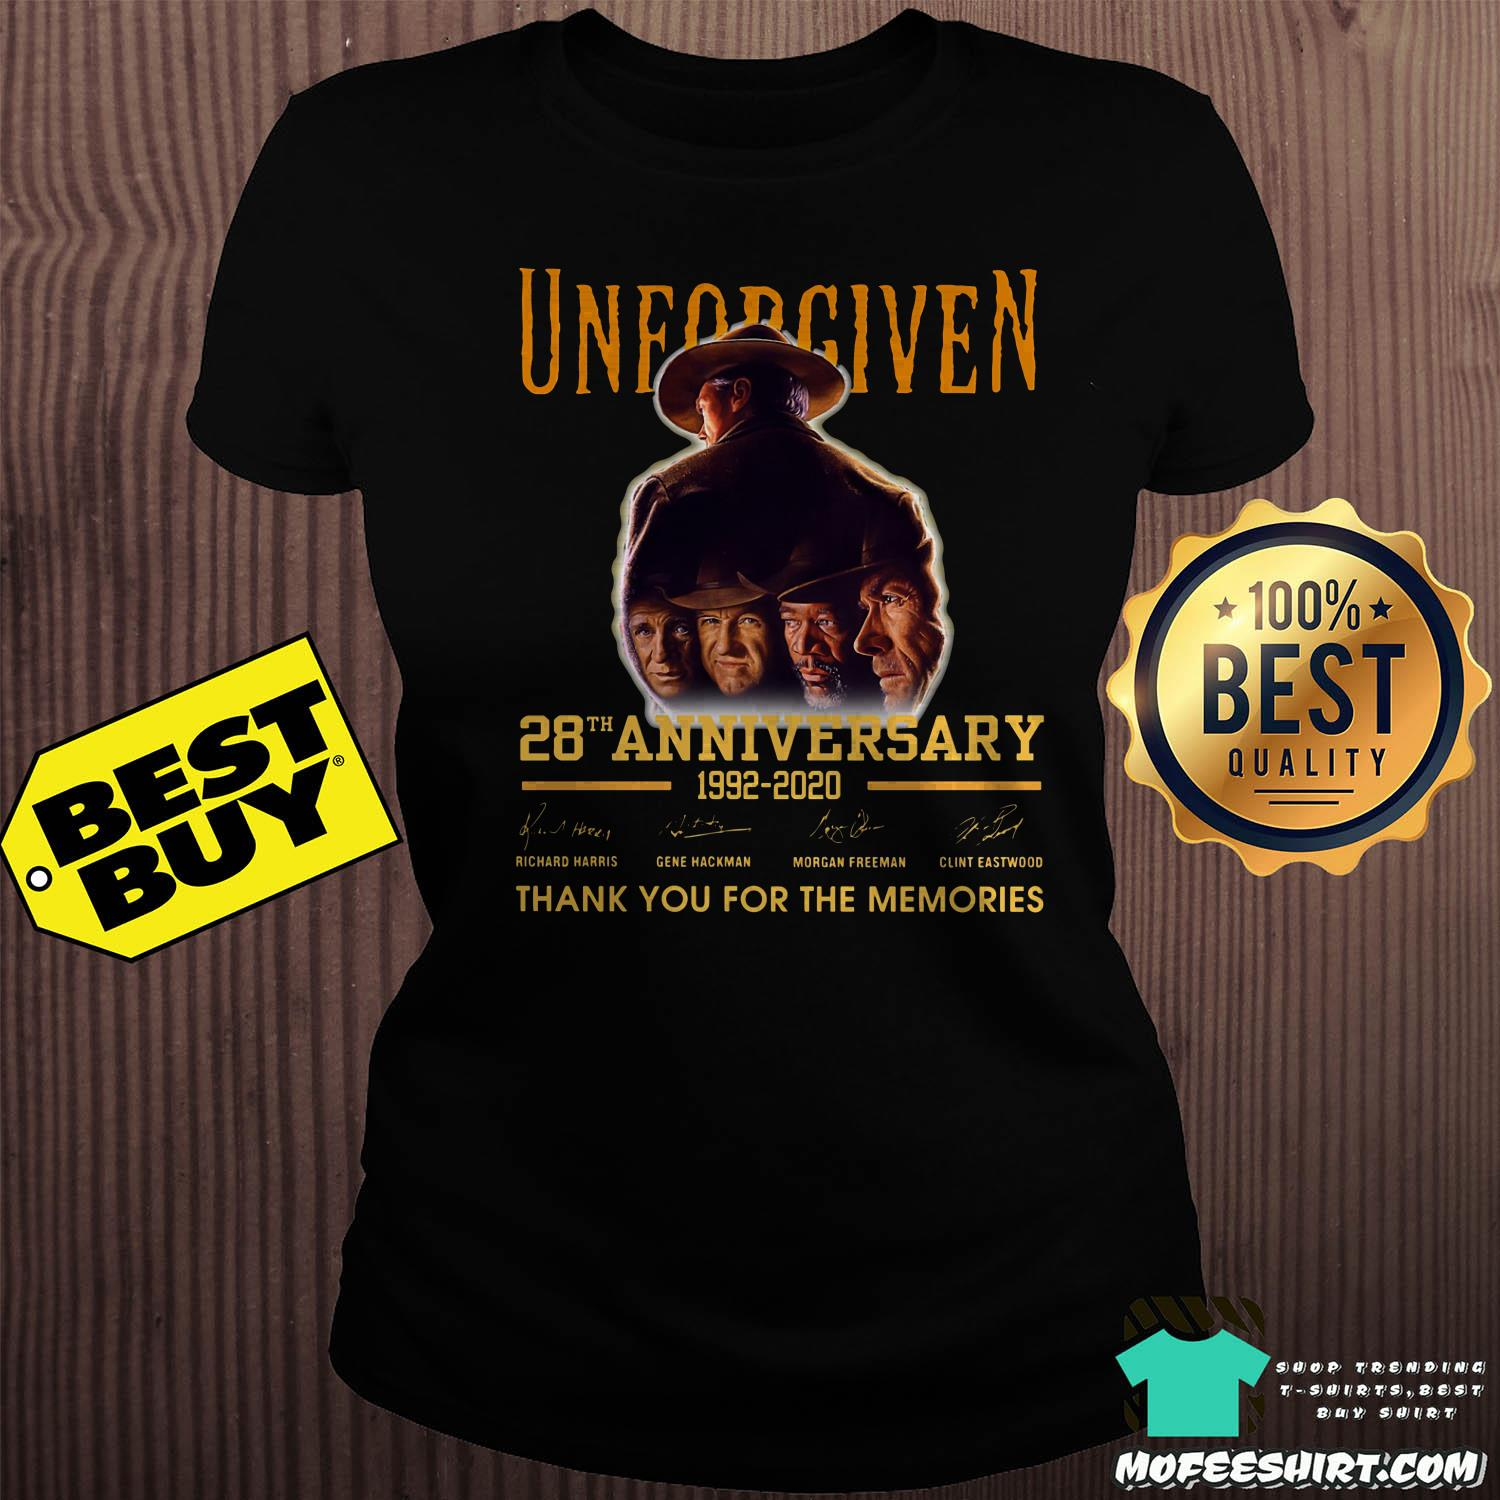 Unforgiven 28th Anniversary 1992-2020 Signature Thank You For The Memories Shirt